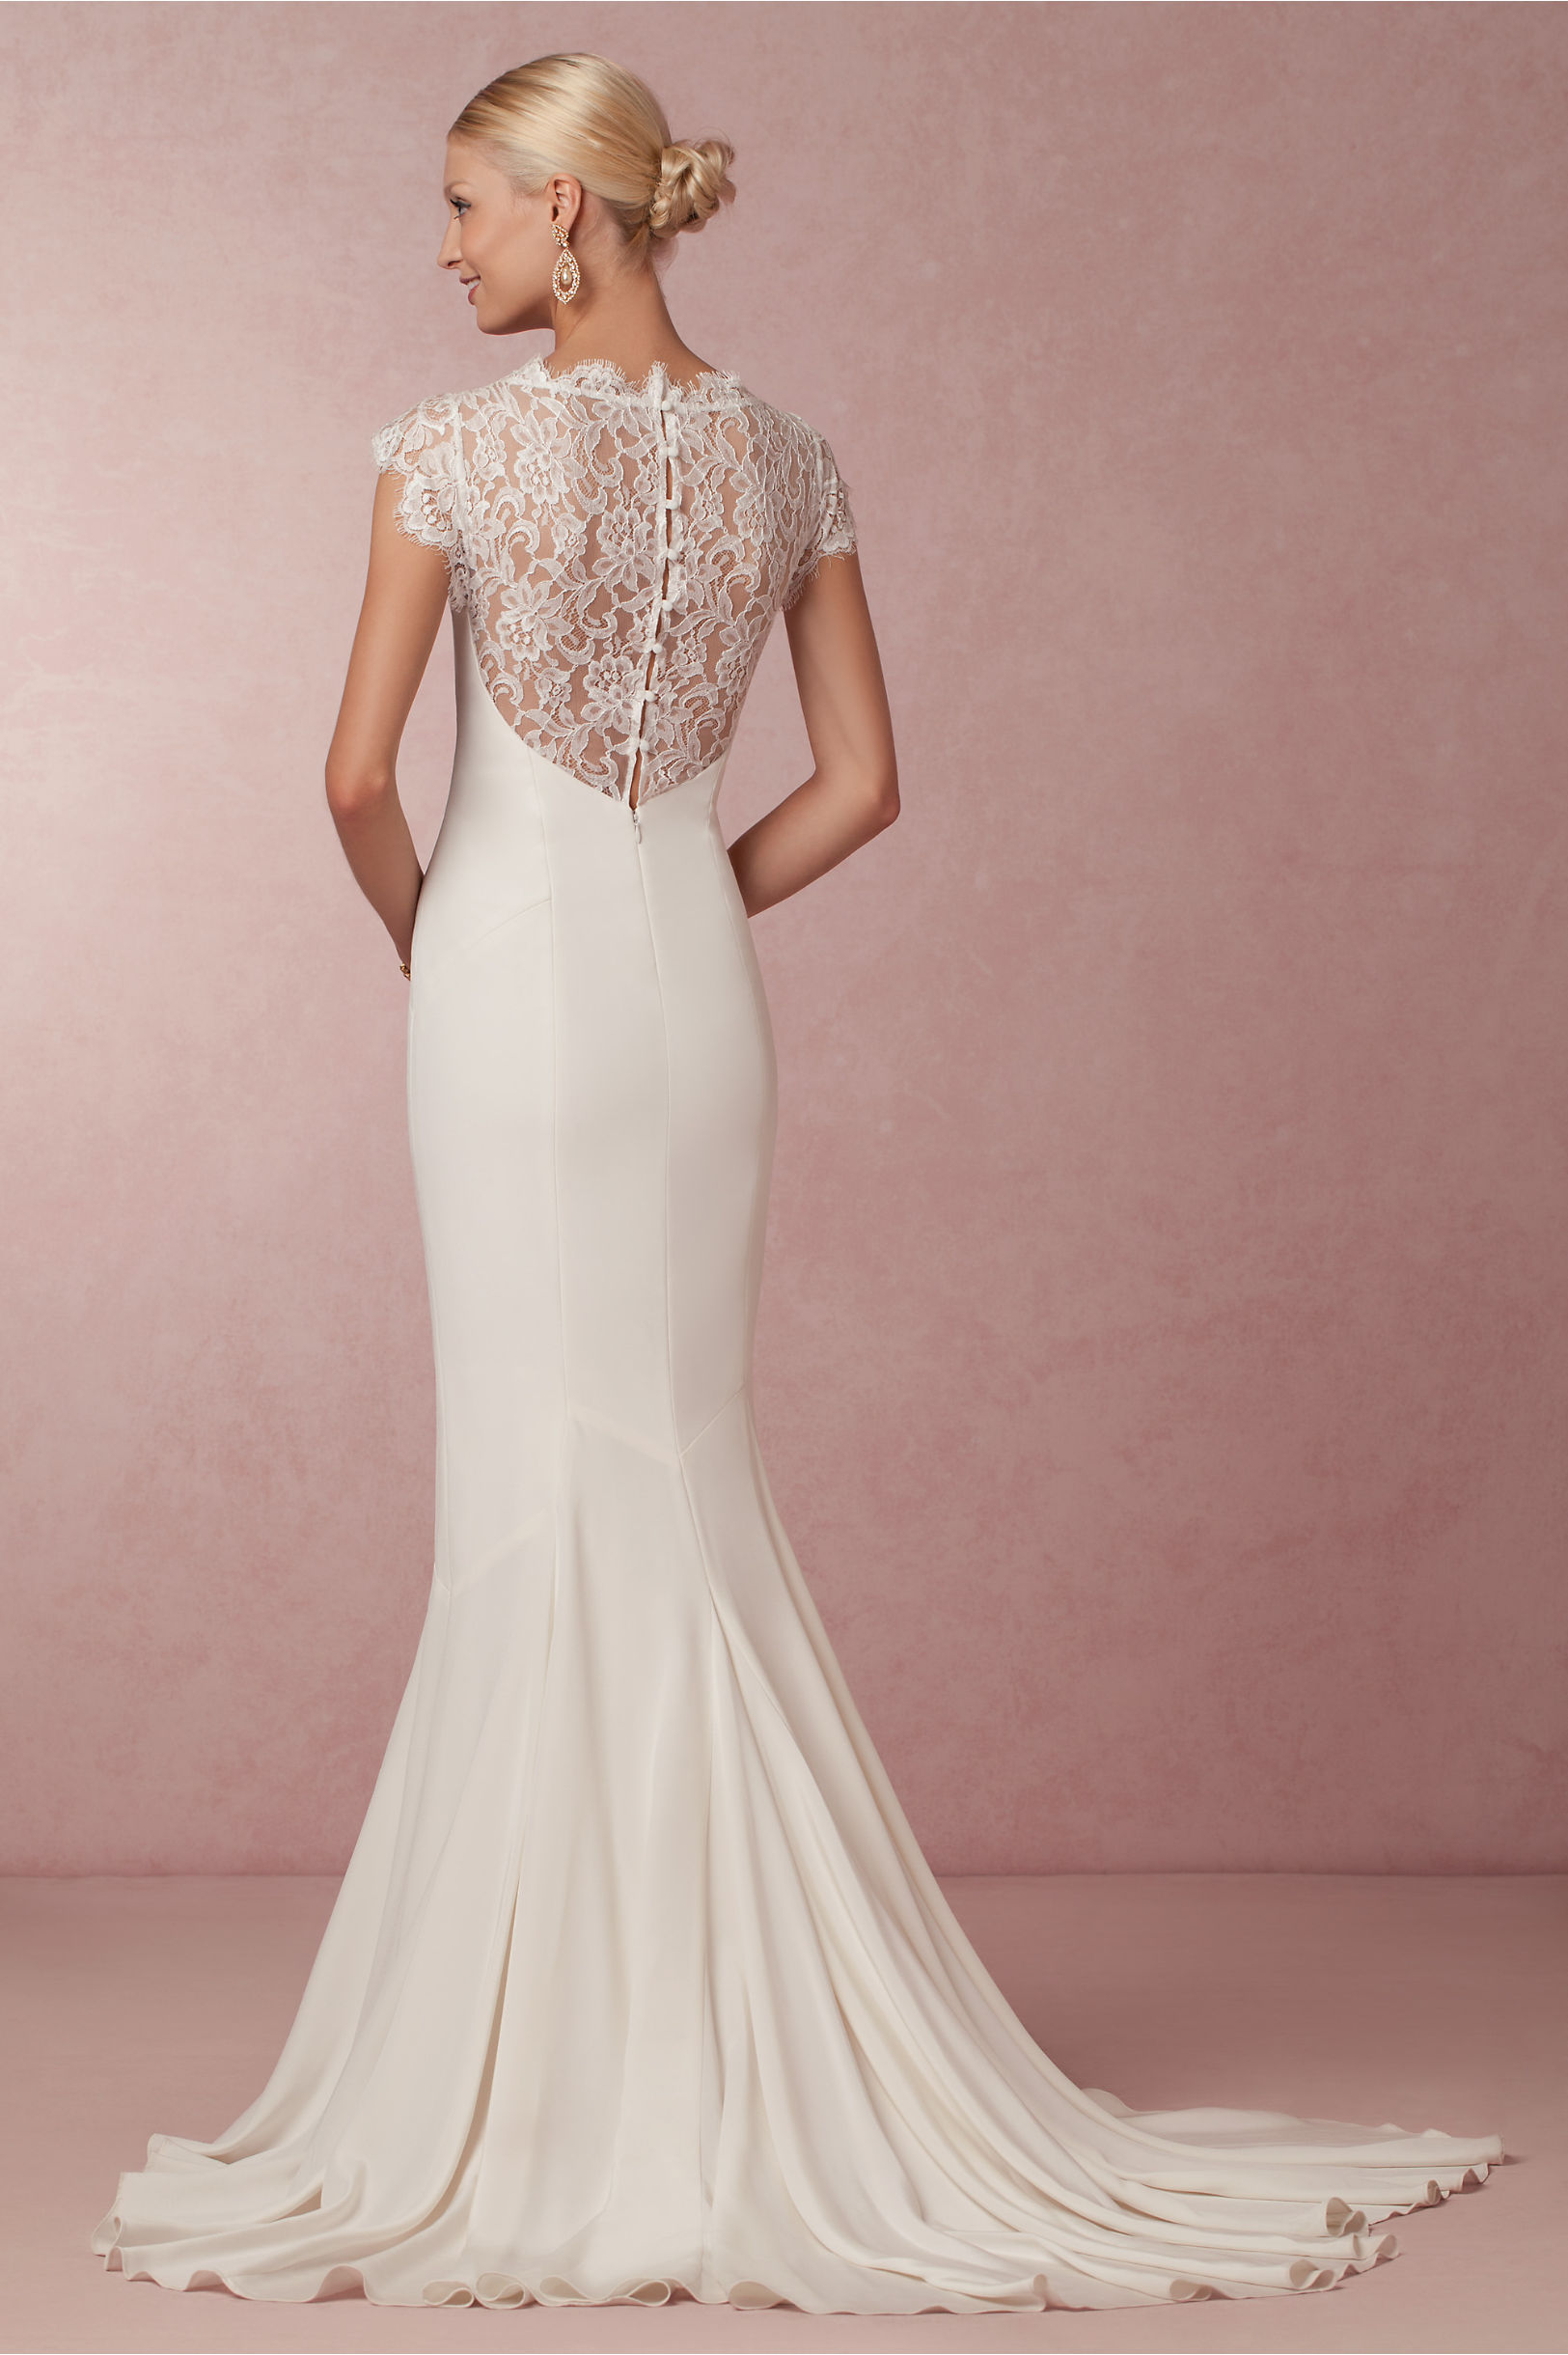 Nicole Miller Lauren Wedding Gown Sample Sale- All Brides Beautiful